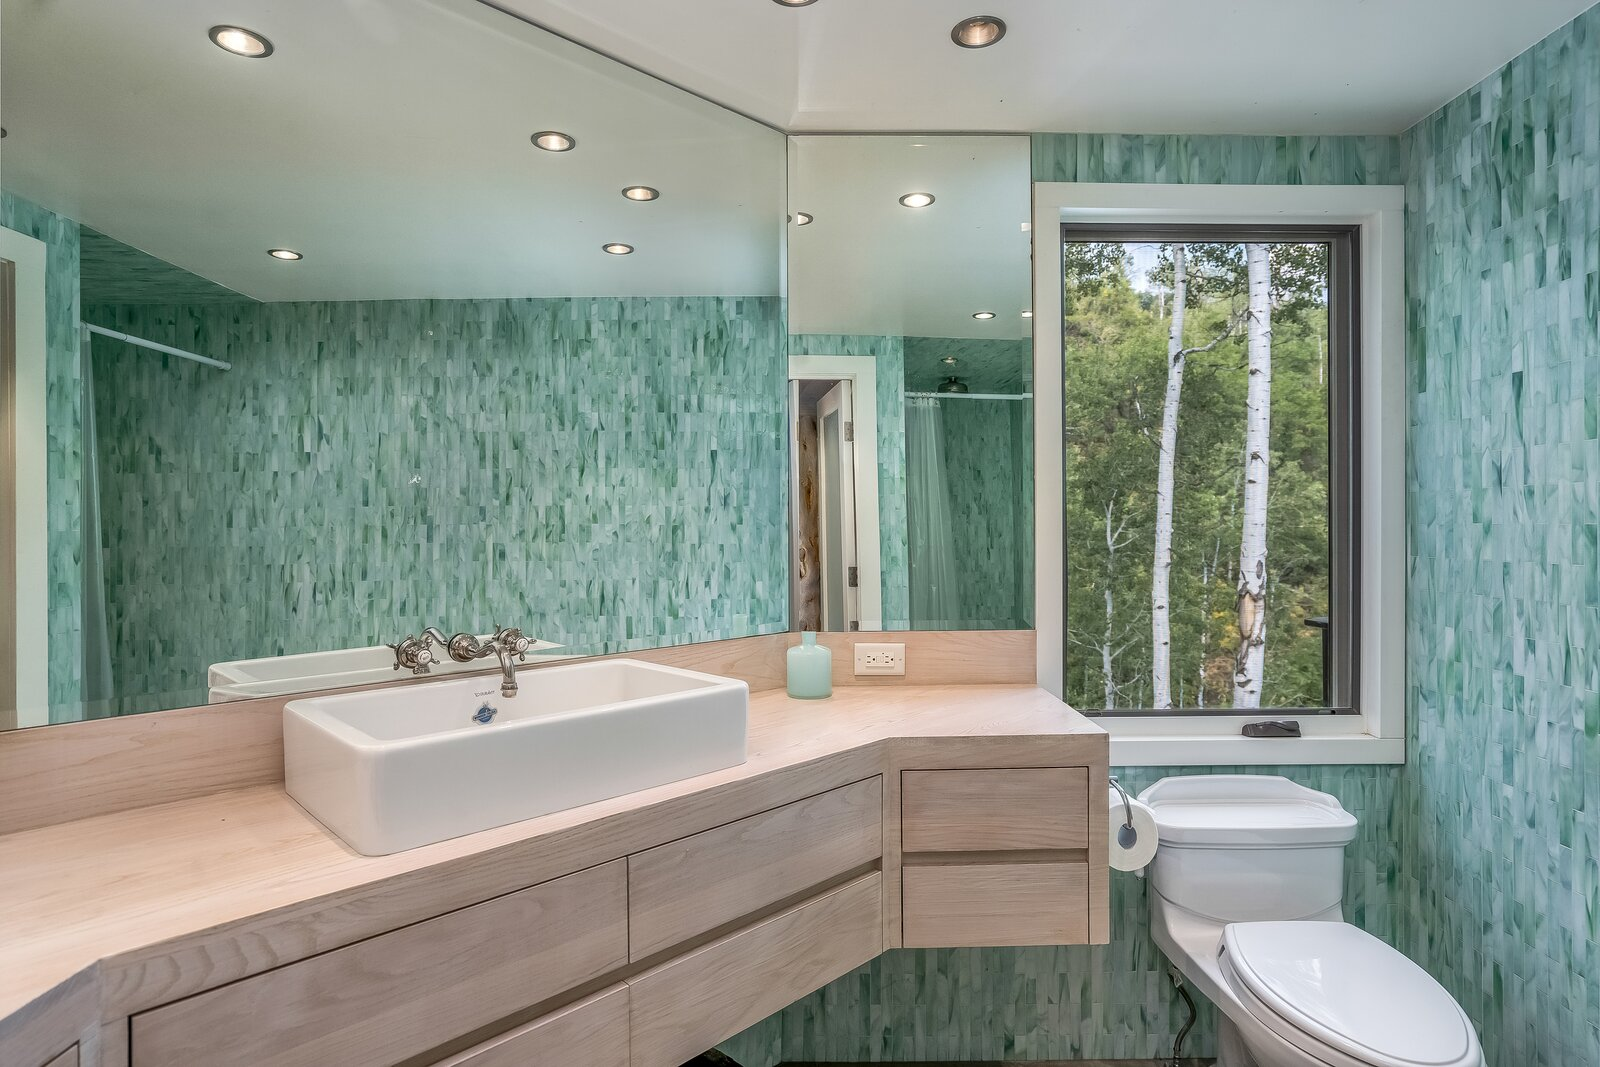 Bathroom features pale wood countertops to align with exterior and interior.  Photo 10 of 16 in An Updated Log Cabin–Style Home in Colorado Seeks $2.4M